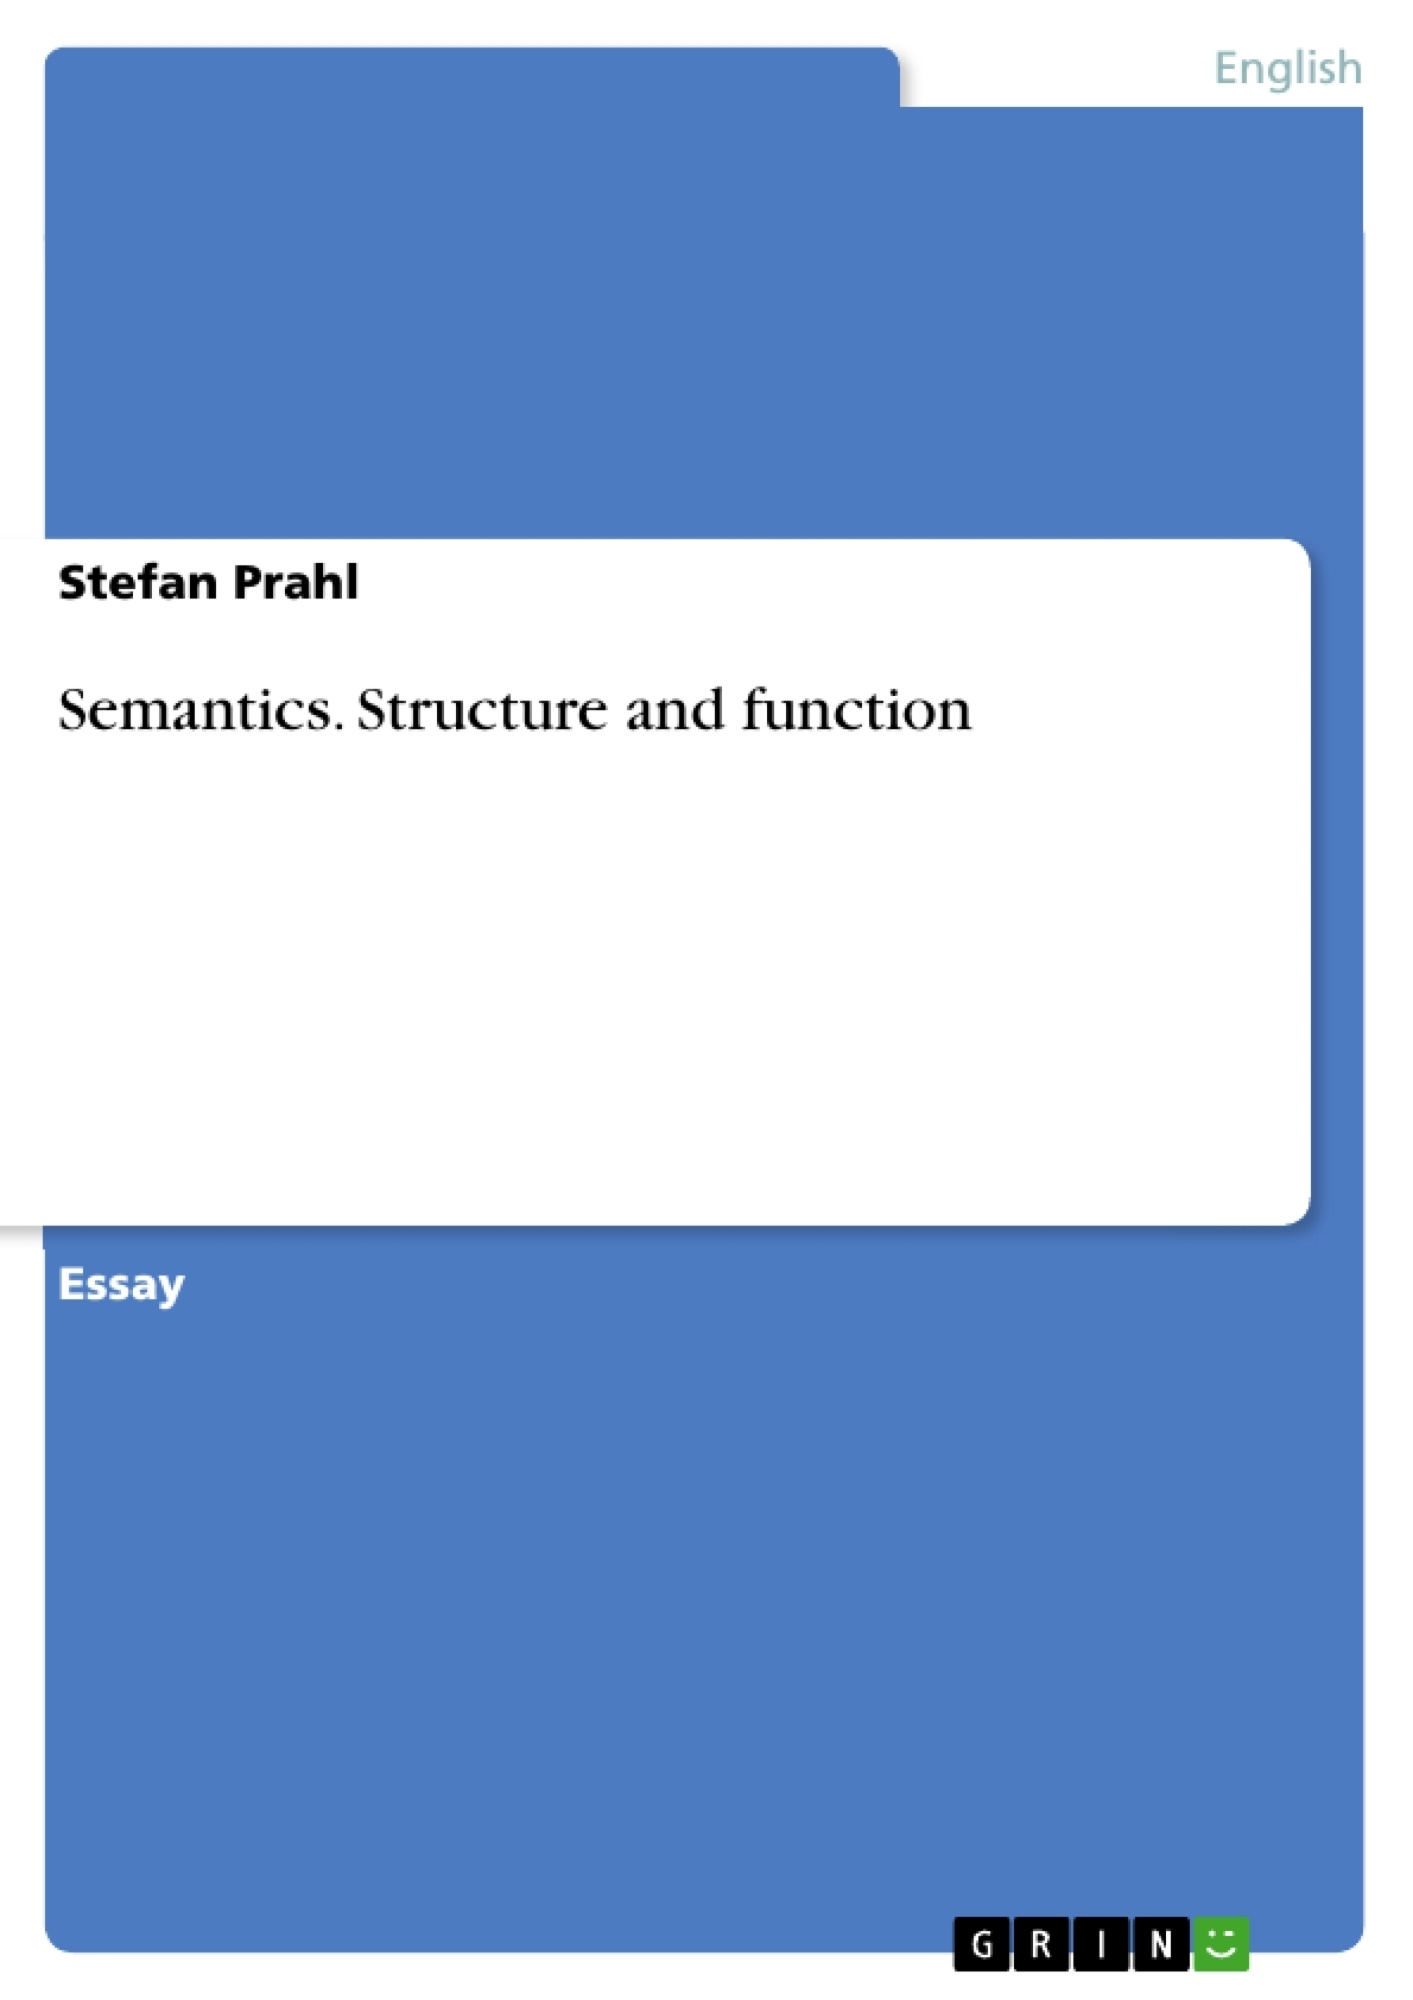 Title: Semantics. Structure and function